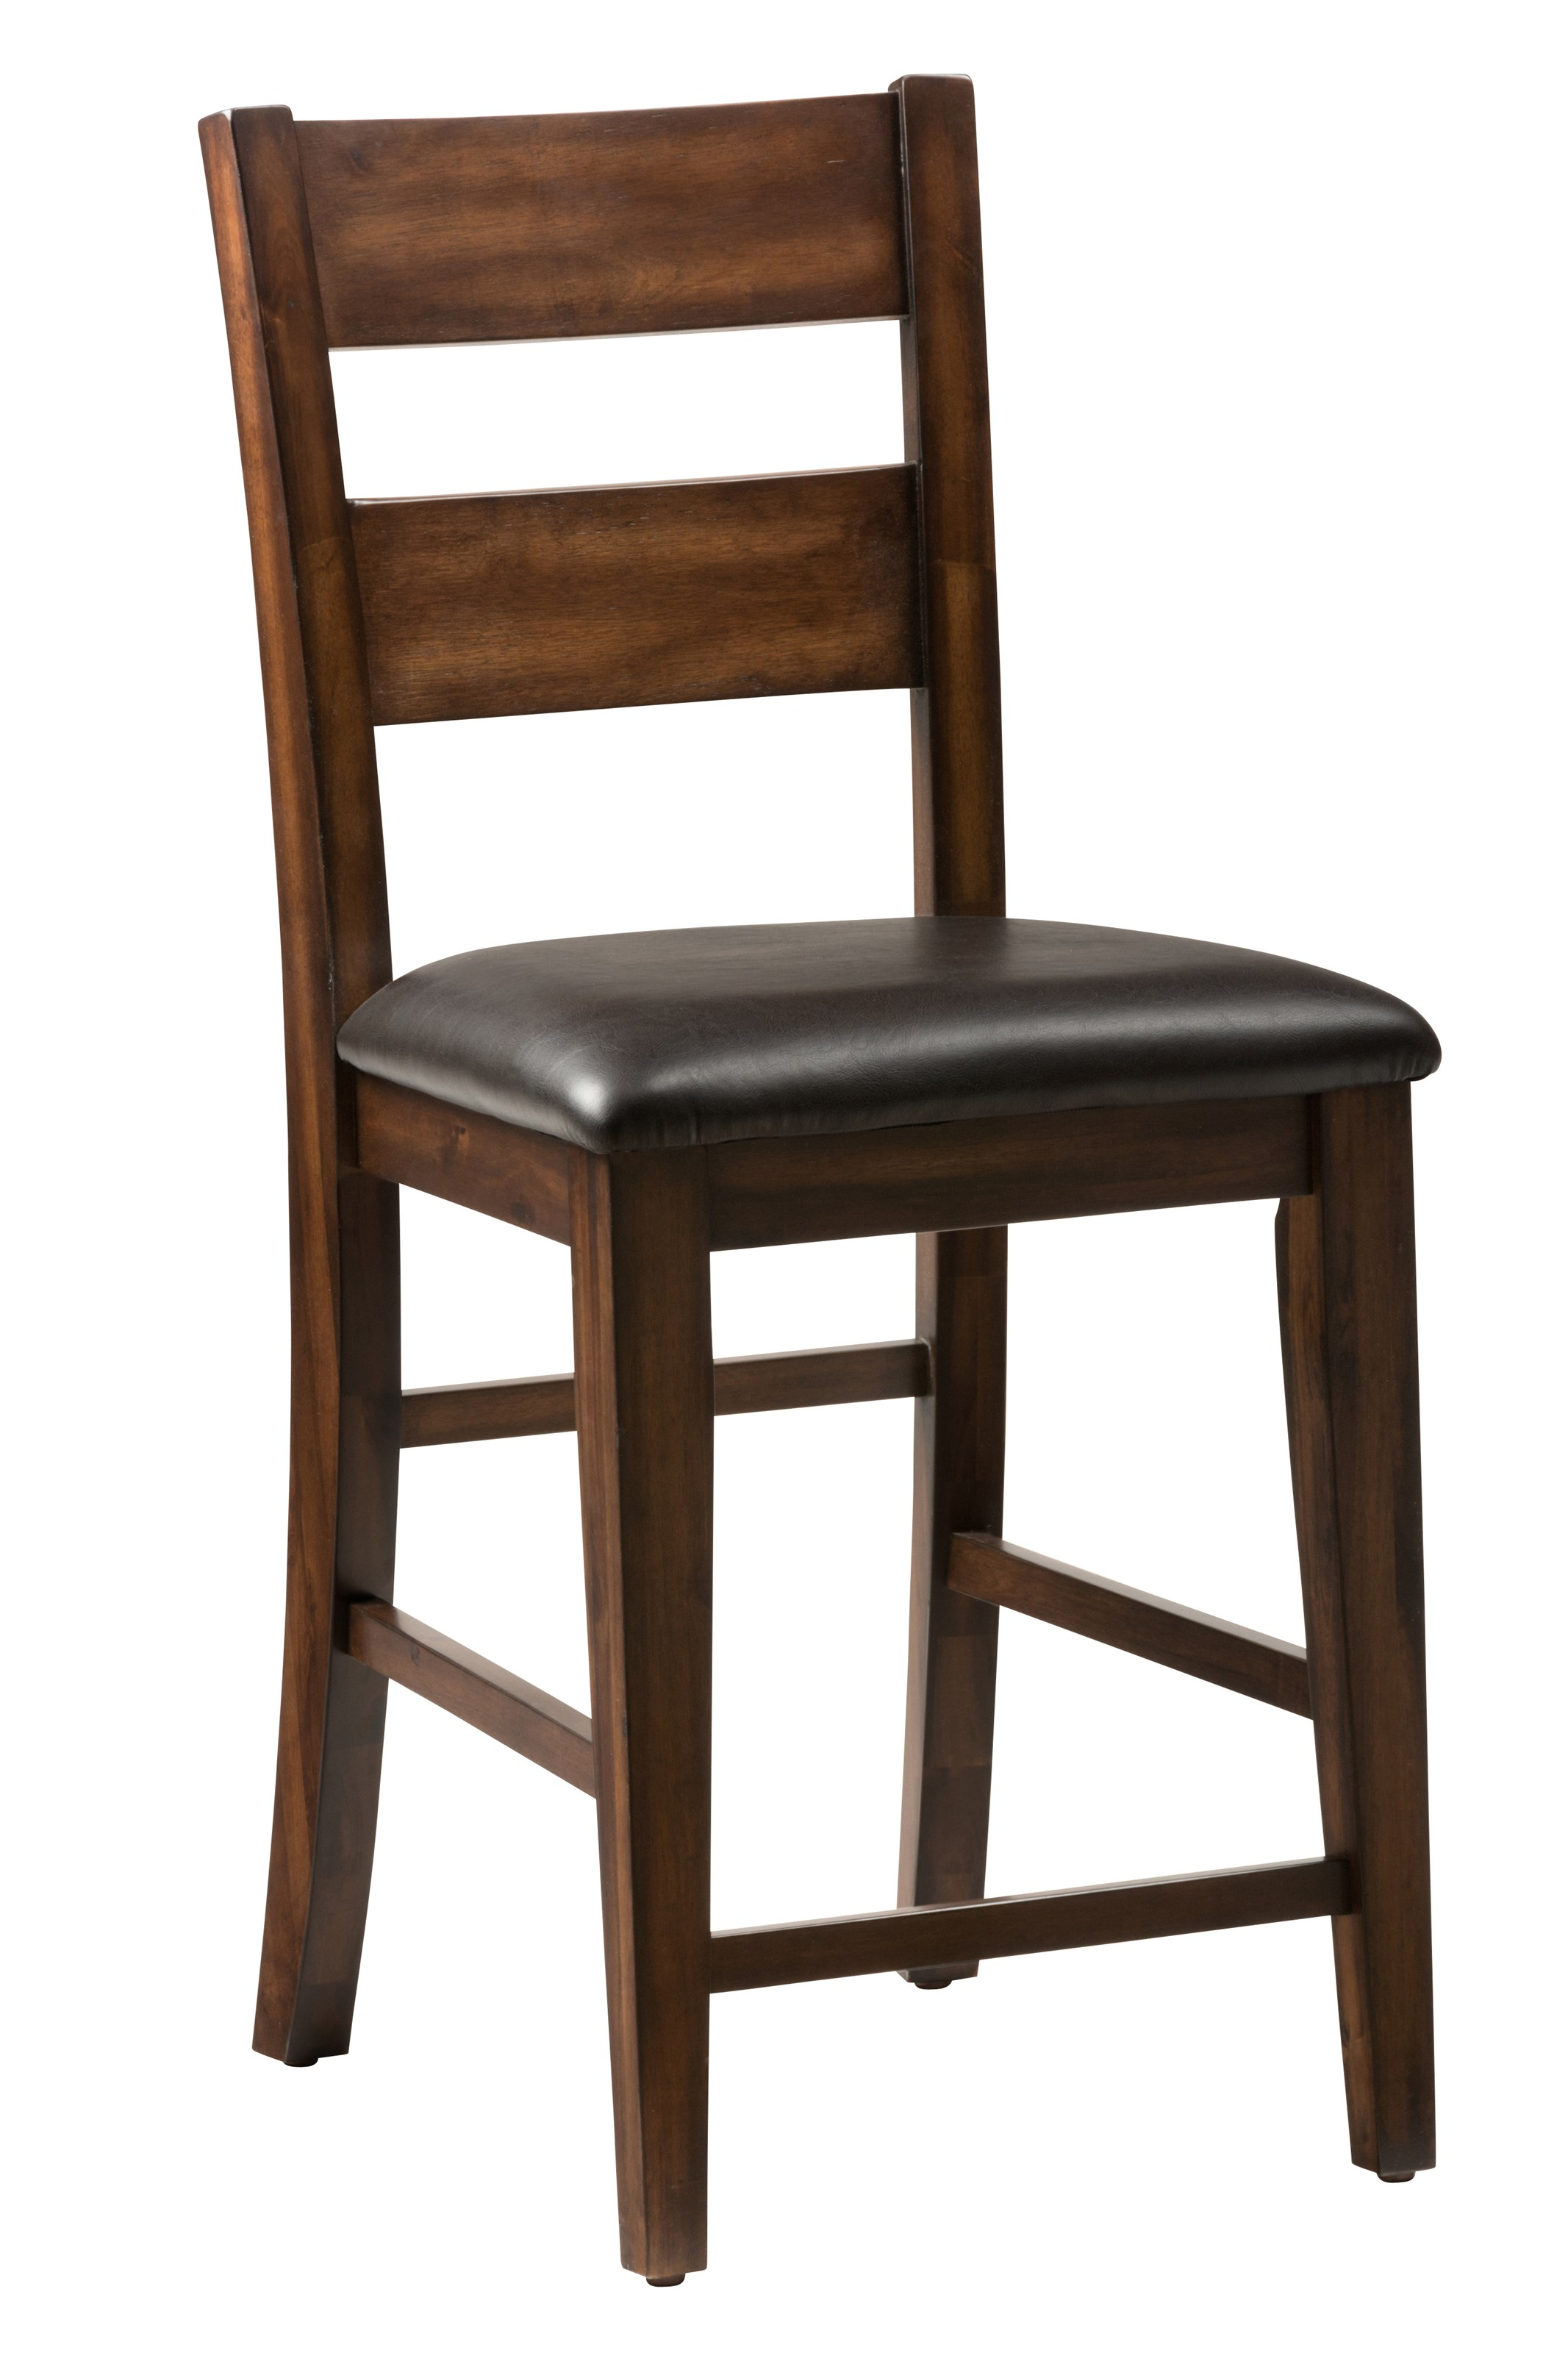 Jofran Cooke County Ladderback Counter Stool with Padded  : products2Fjofran2Fcolor2Fcooke20county20581581 bs478kd b3 from www.zaksfurniture.com size 2133 x 3200 jpeg 446kB